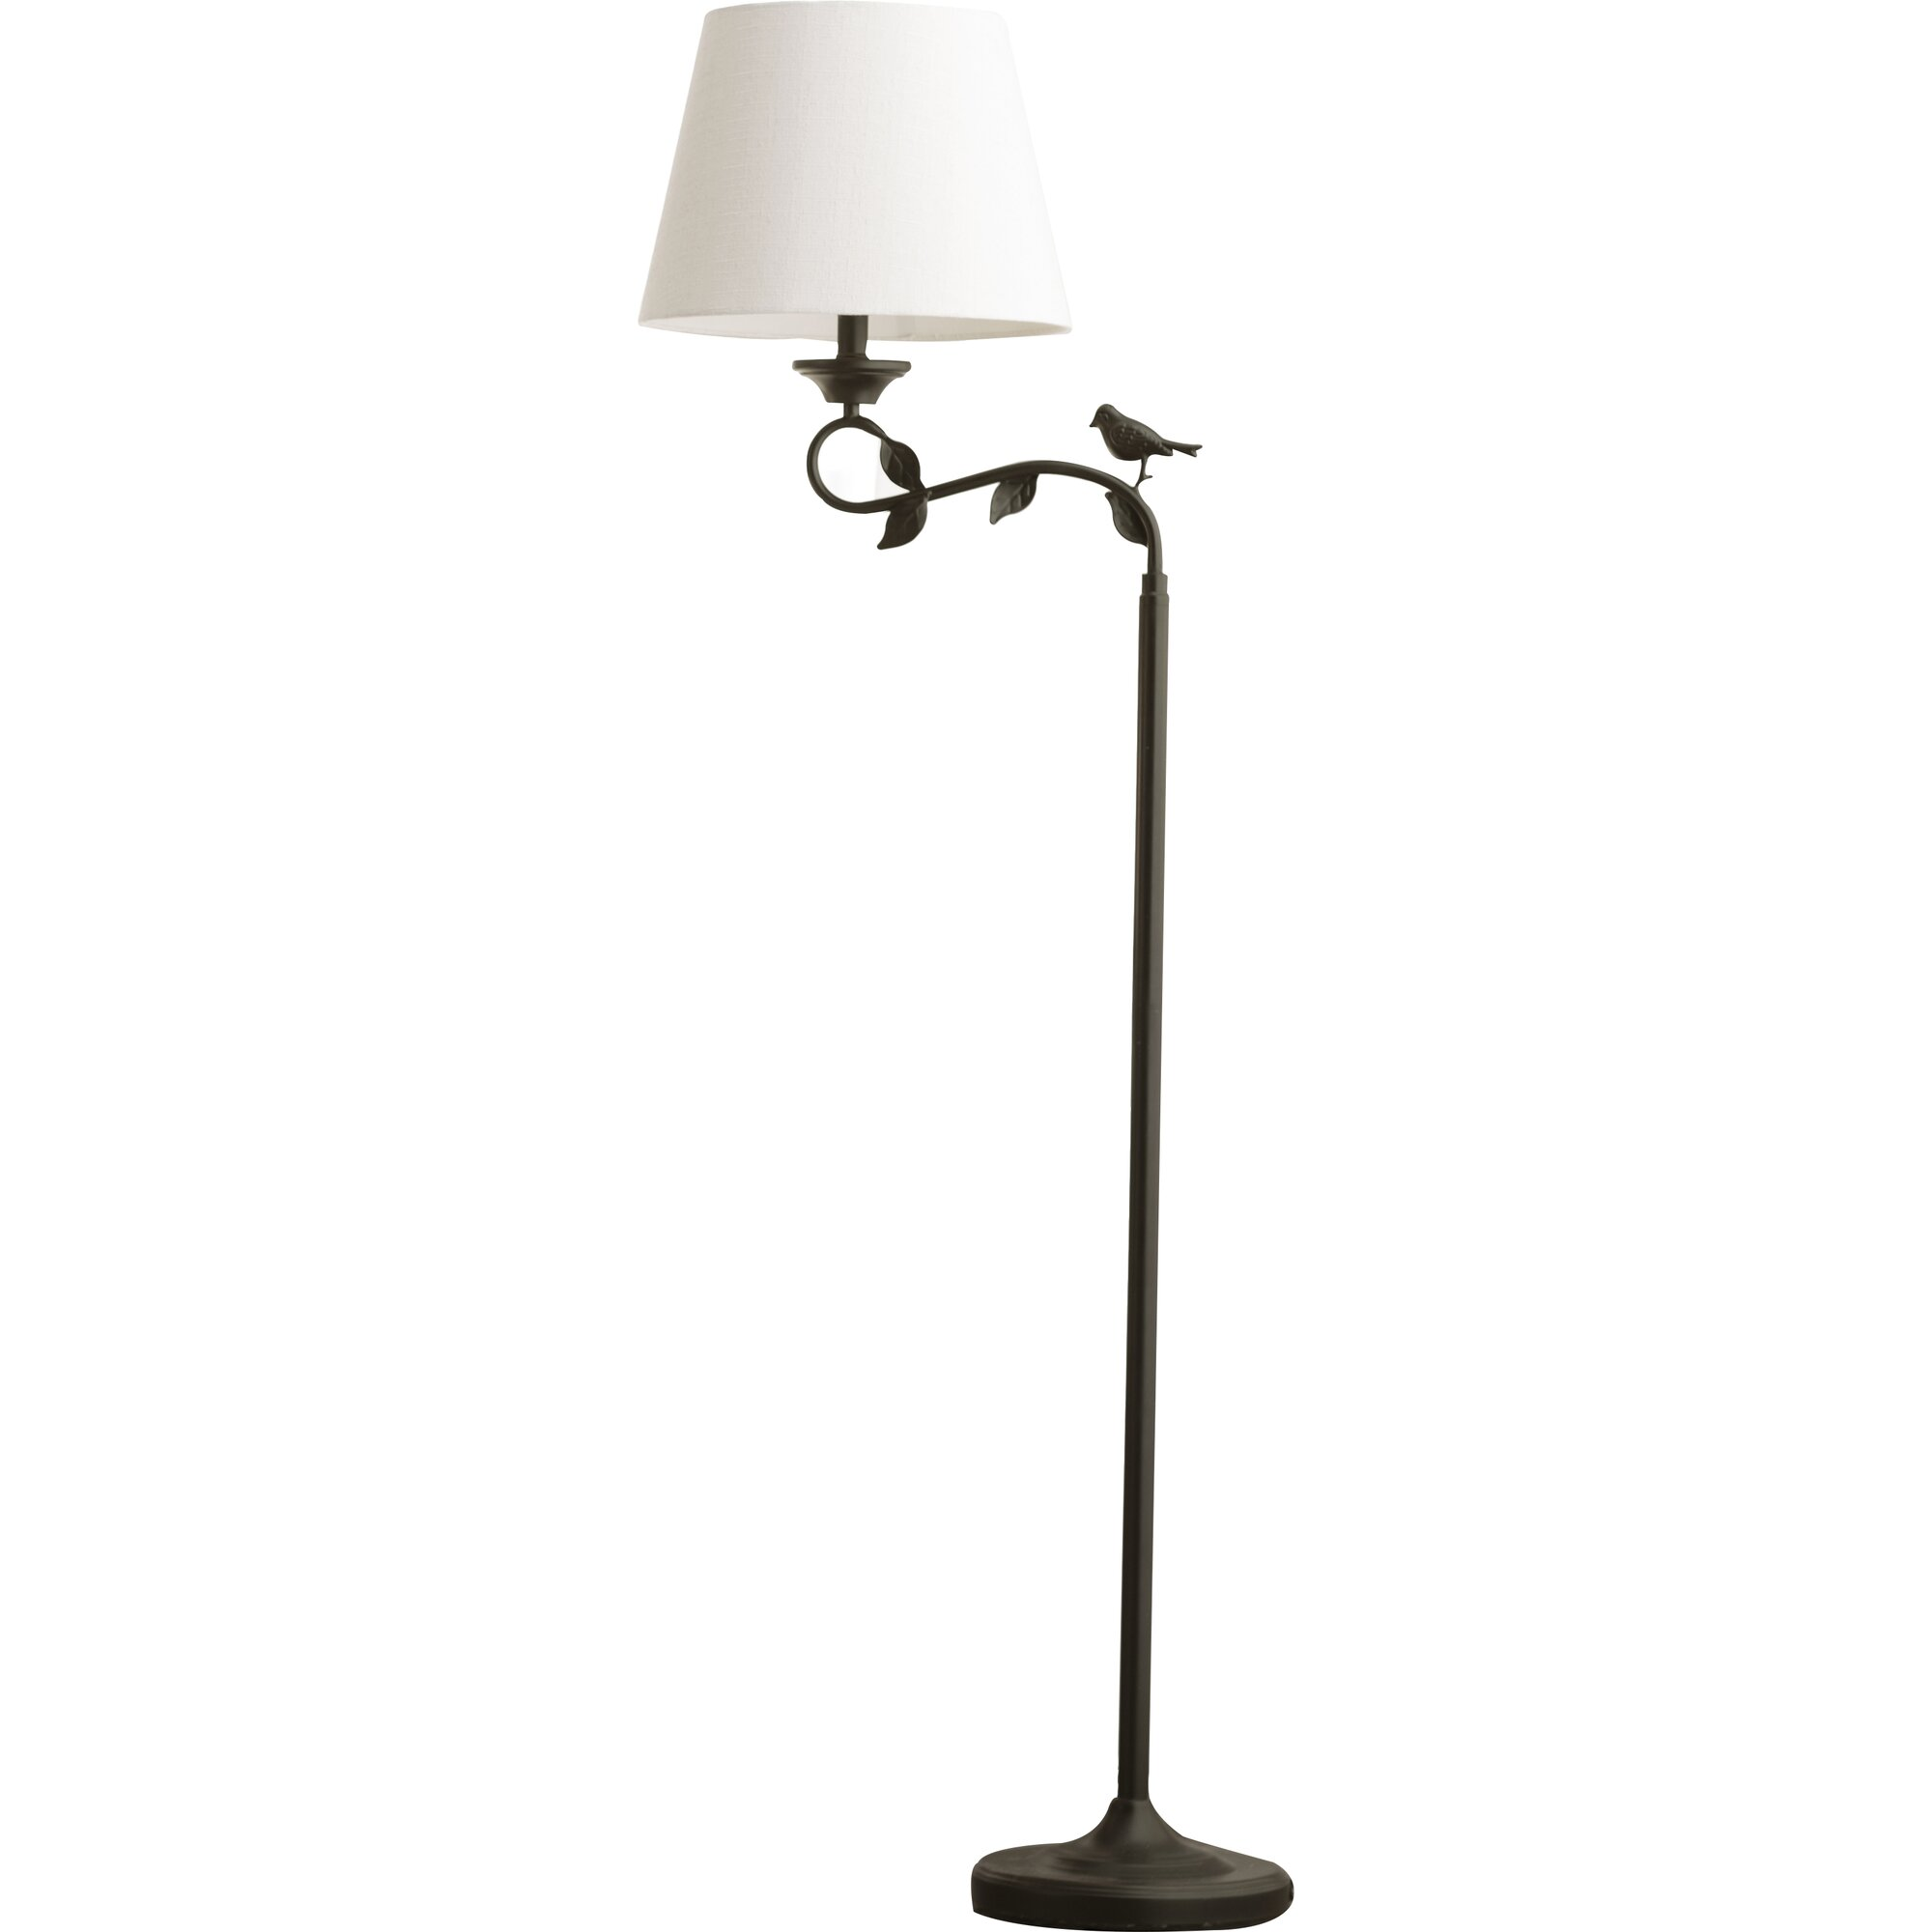 Lark manor chaumont 60 arched floor lamp reviews for Arch floor lamps for living room